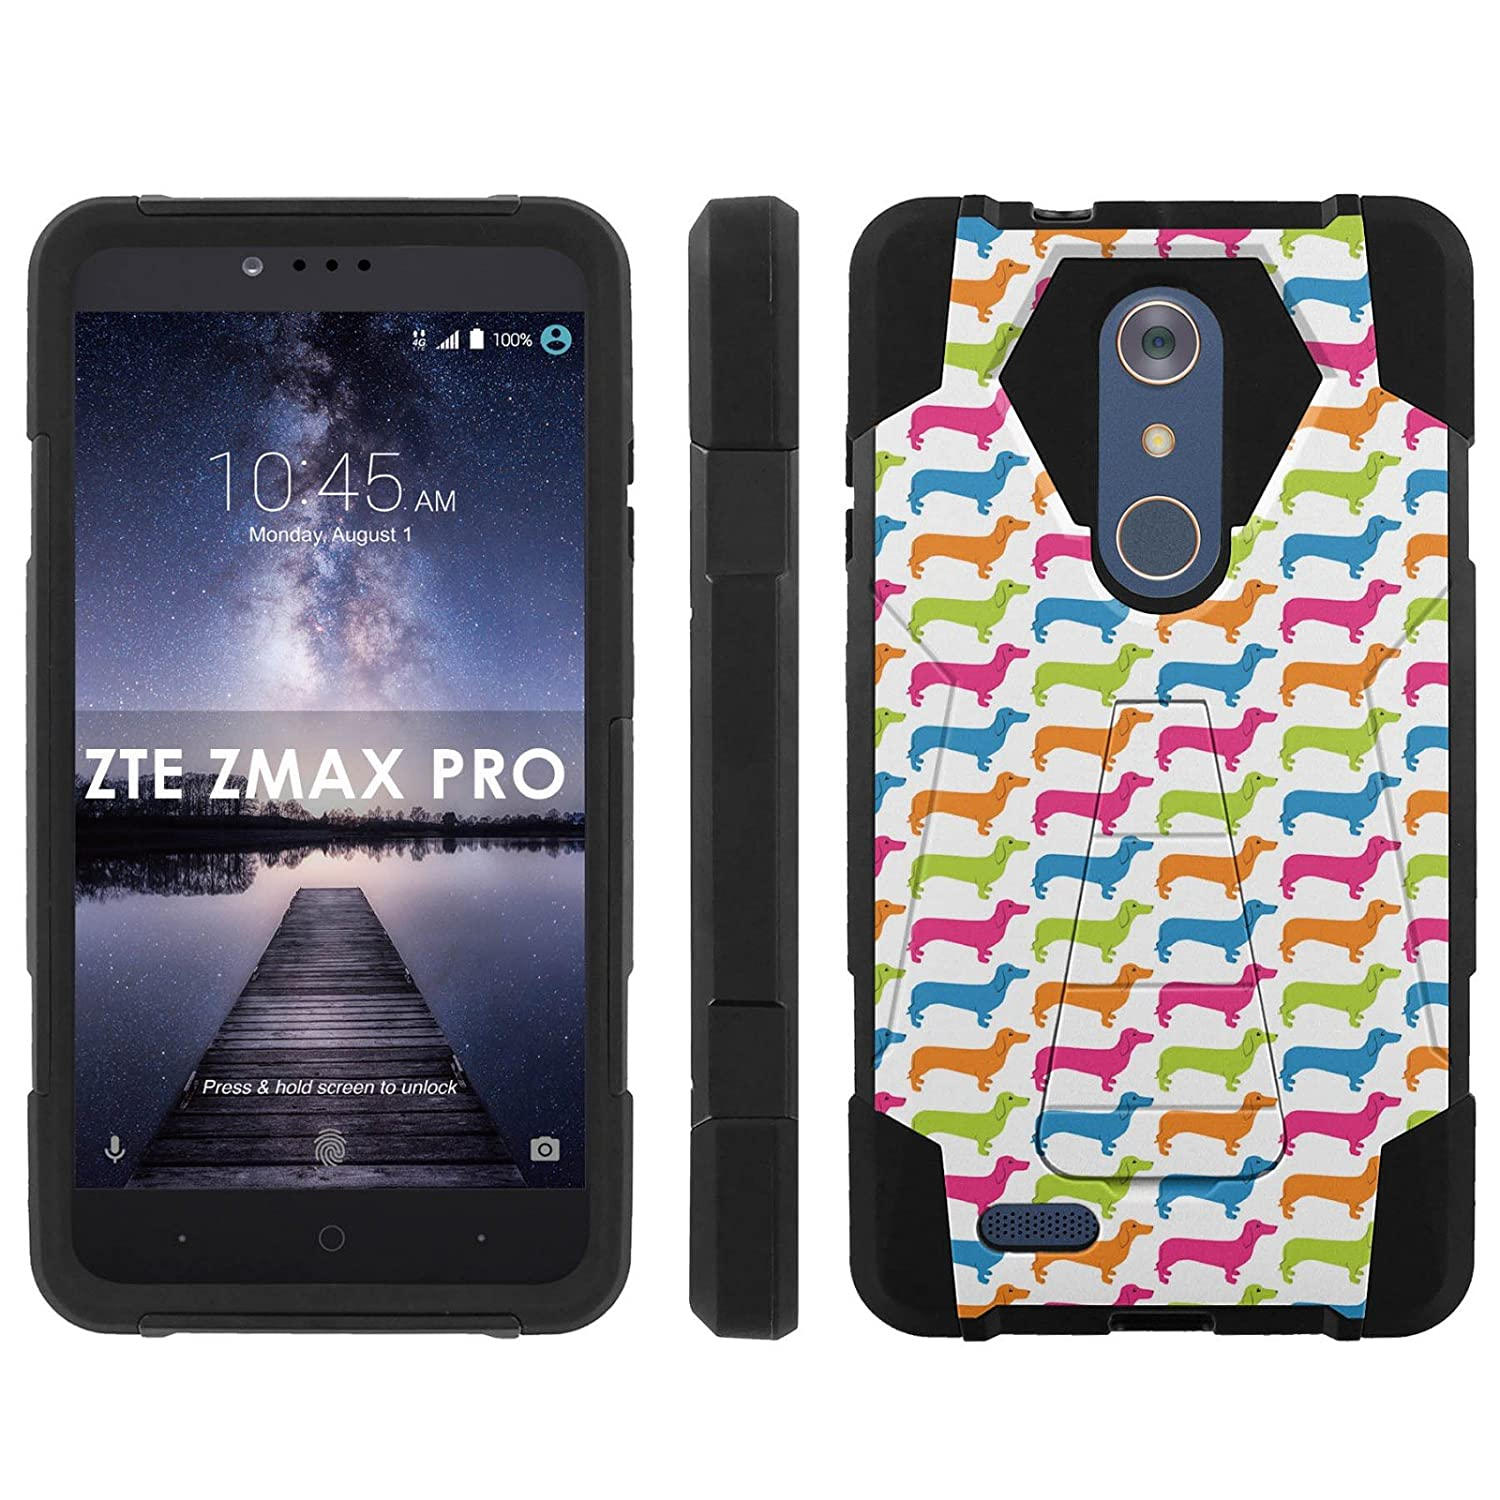 How To Unlock Zte Phone Pattern Simple Design Ideas